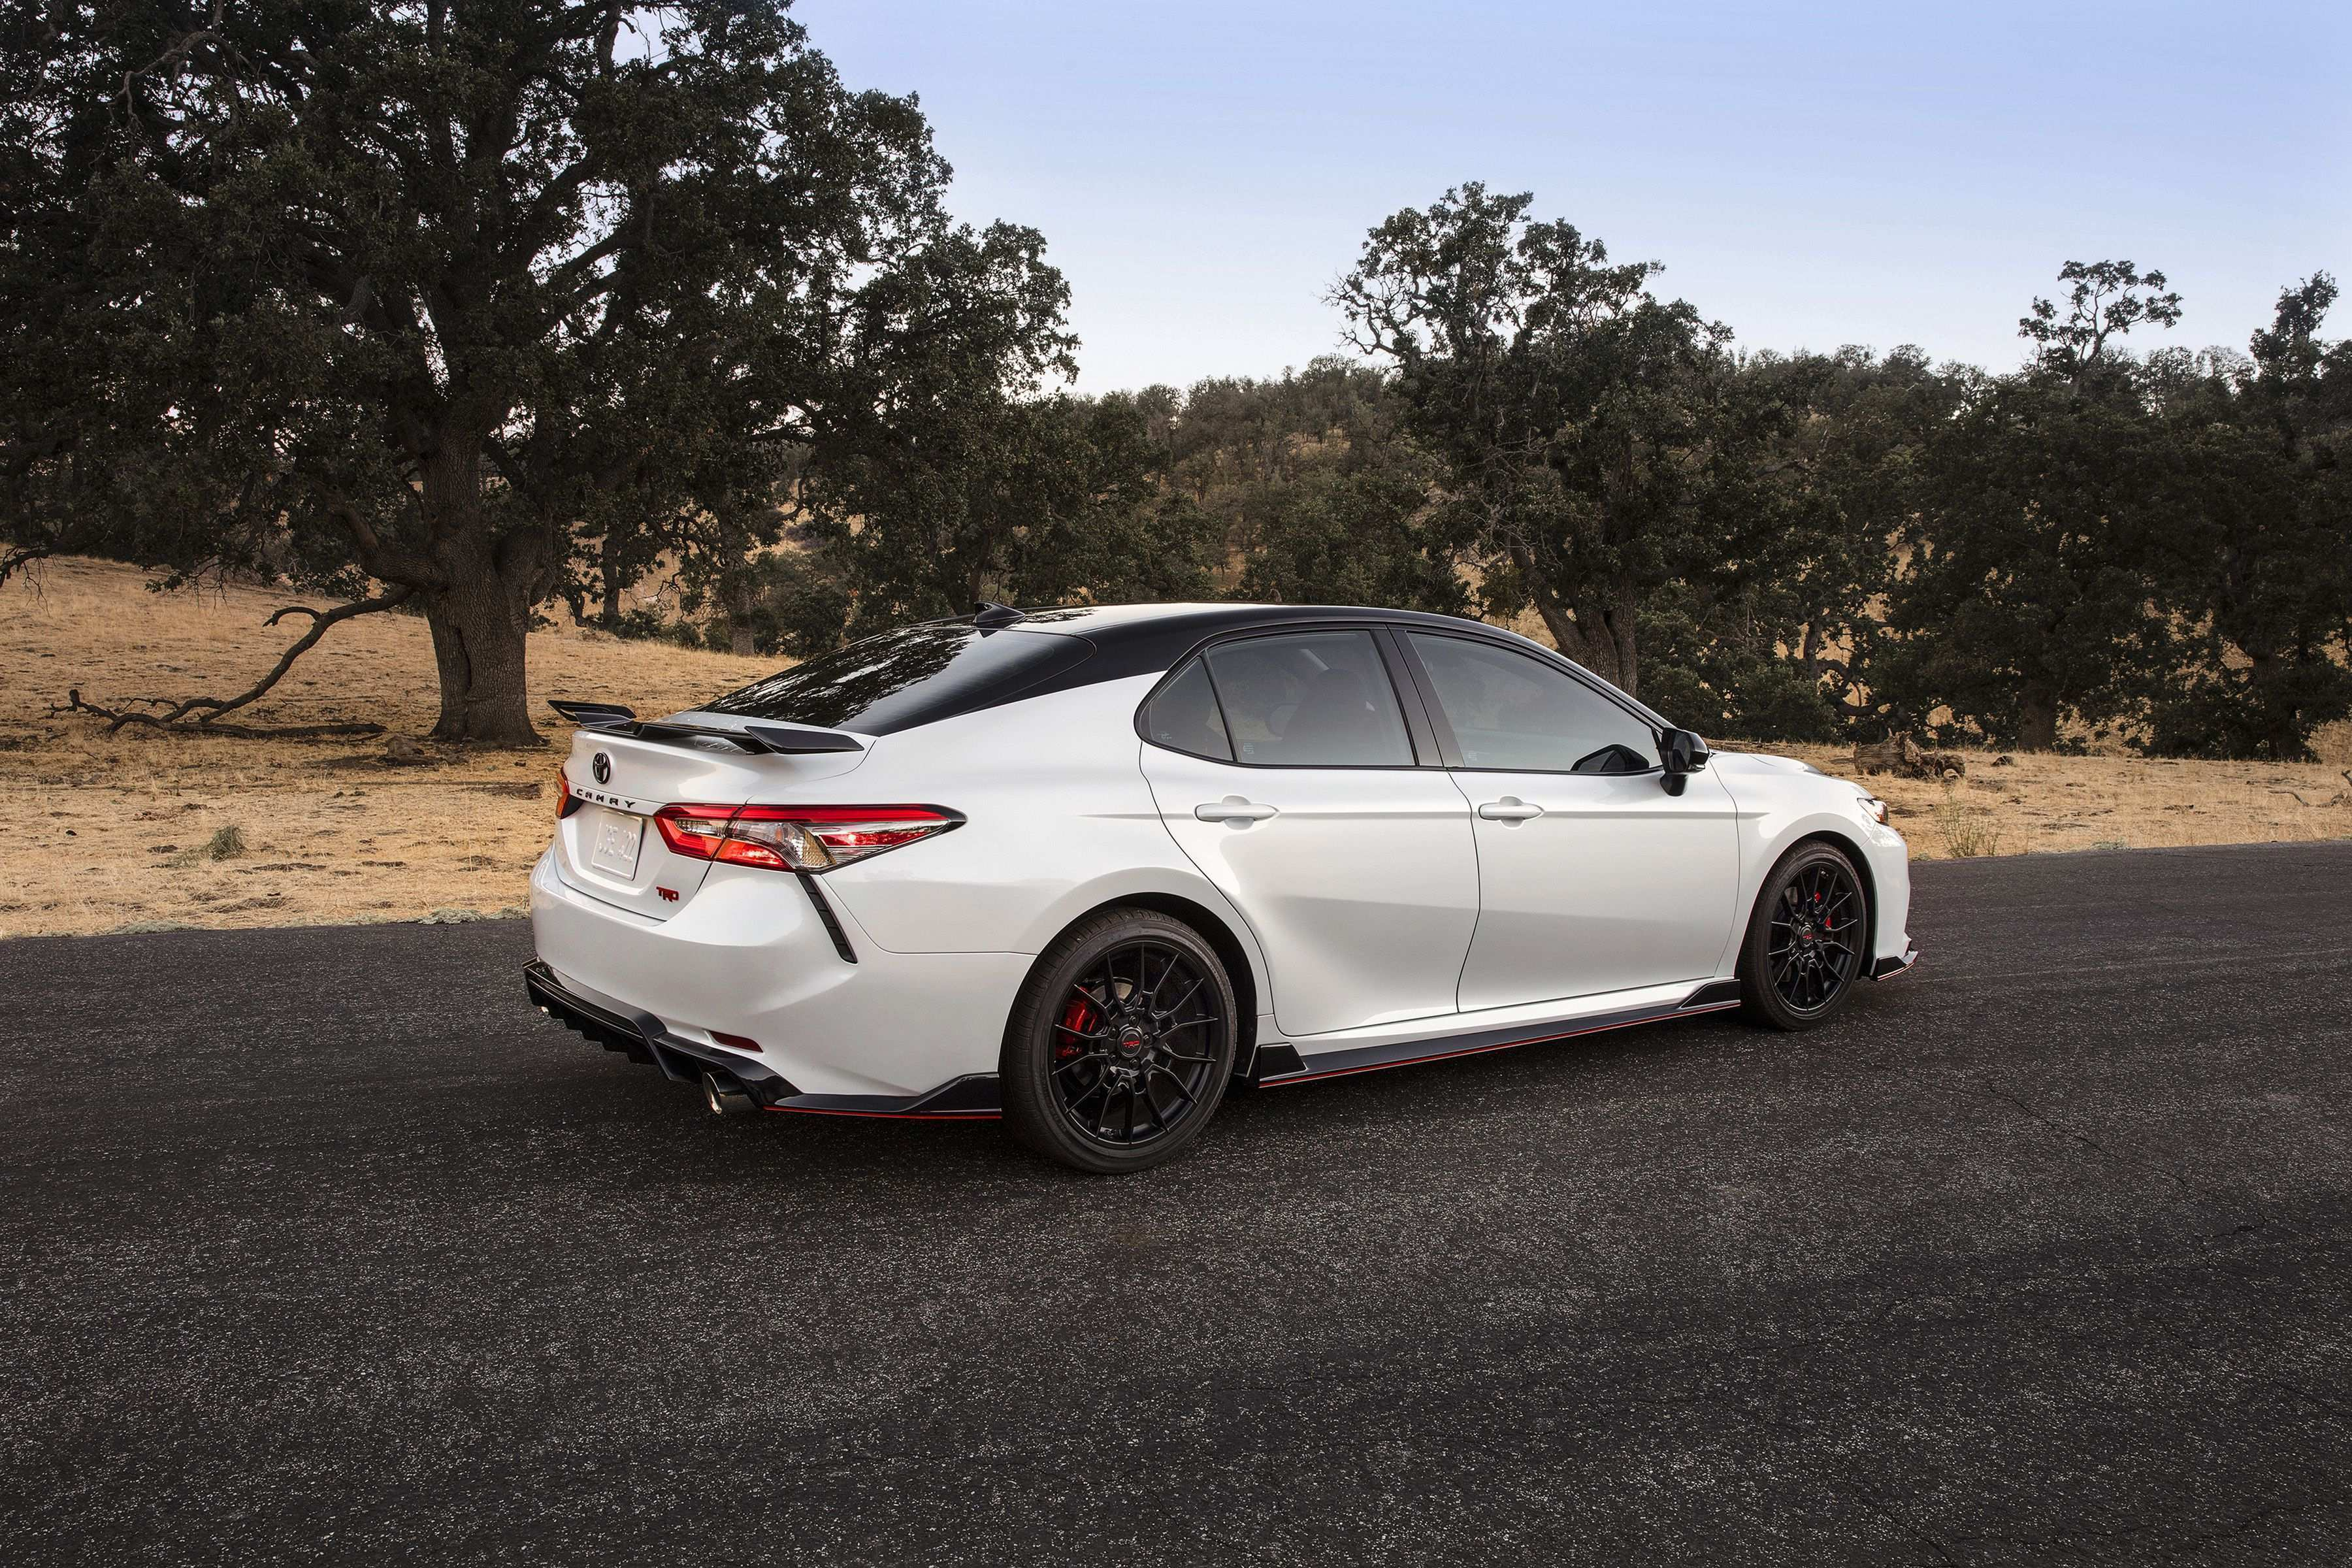 58 Concept of 2020 All Toyota Camry History with 2020 All Toyota Camry